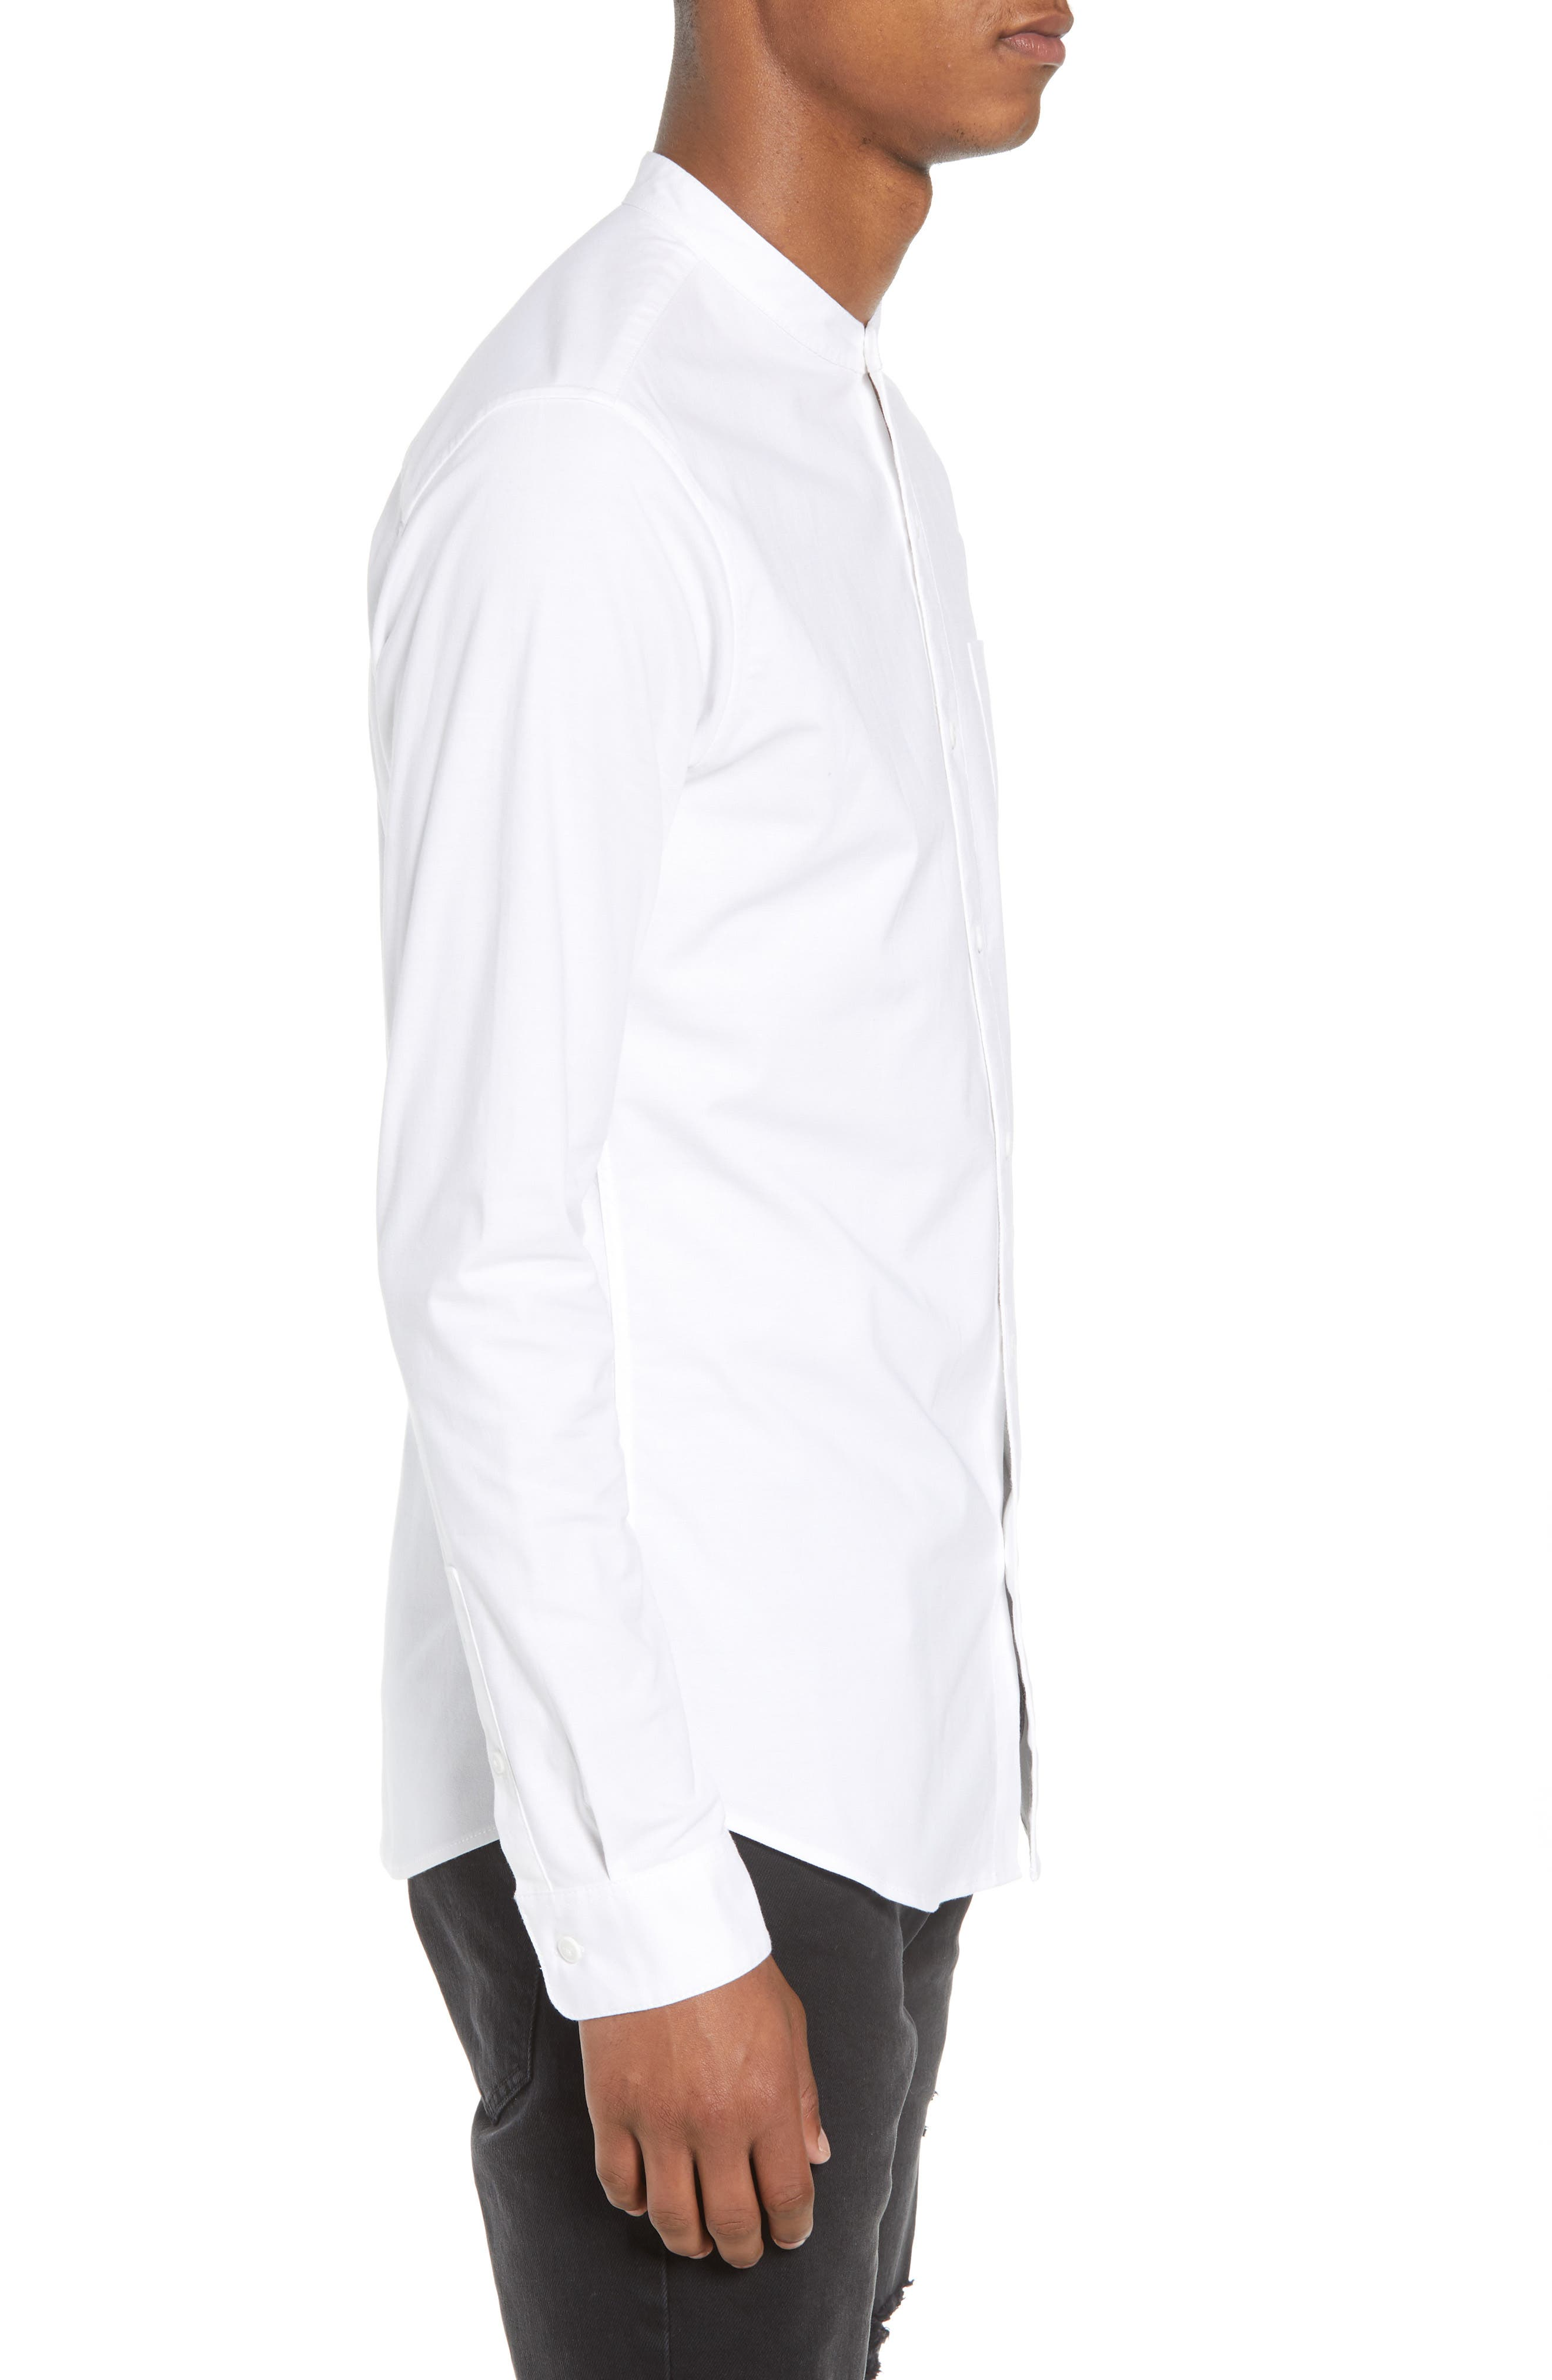 TOPMAN, Muscle Fit Band Collar Shirt, Alternate thumbnail 4, color, WHITE